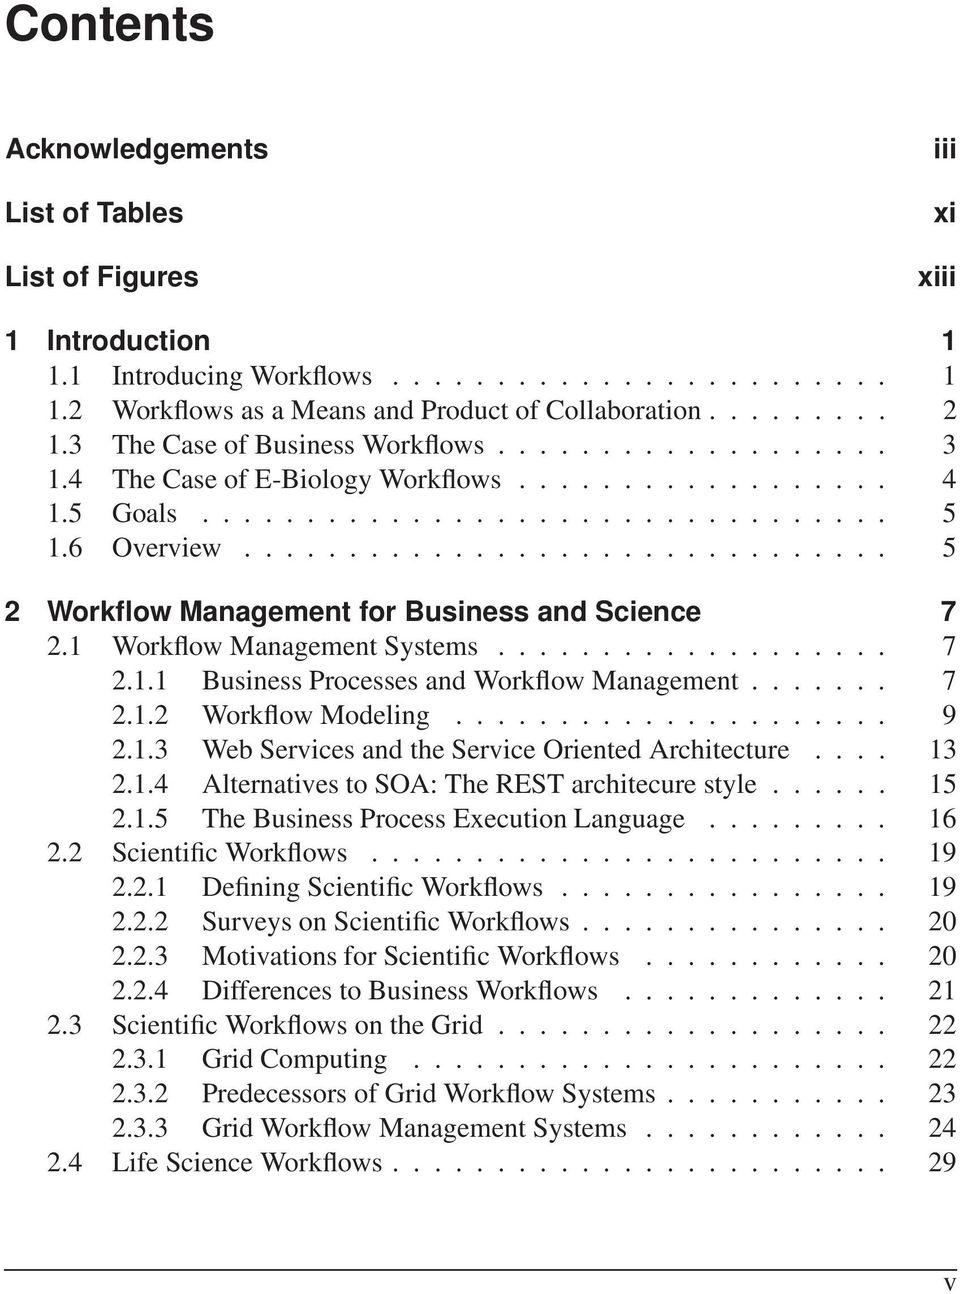 .............................. 5 2 Workflow Management for Business and Science 7 2.1 Workflow Management Systems................... 7 2.1.1 Business Processes and Workflow Management....... 7 2.1.2 Workflow Modeling.